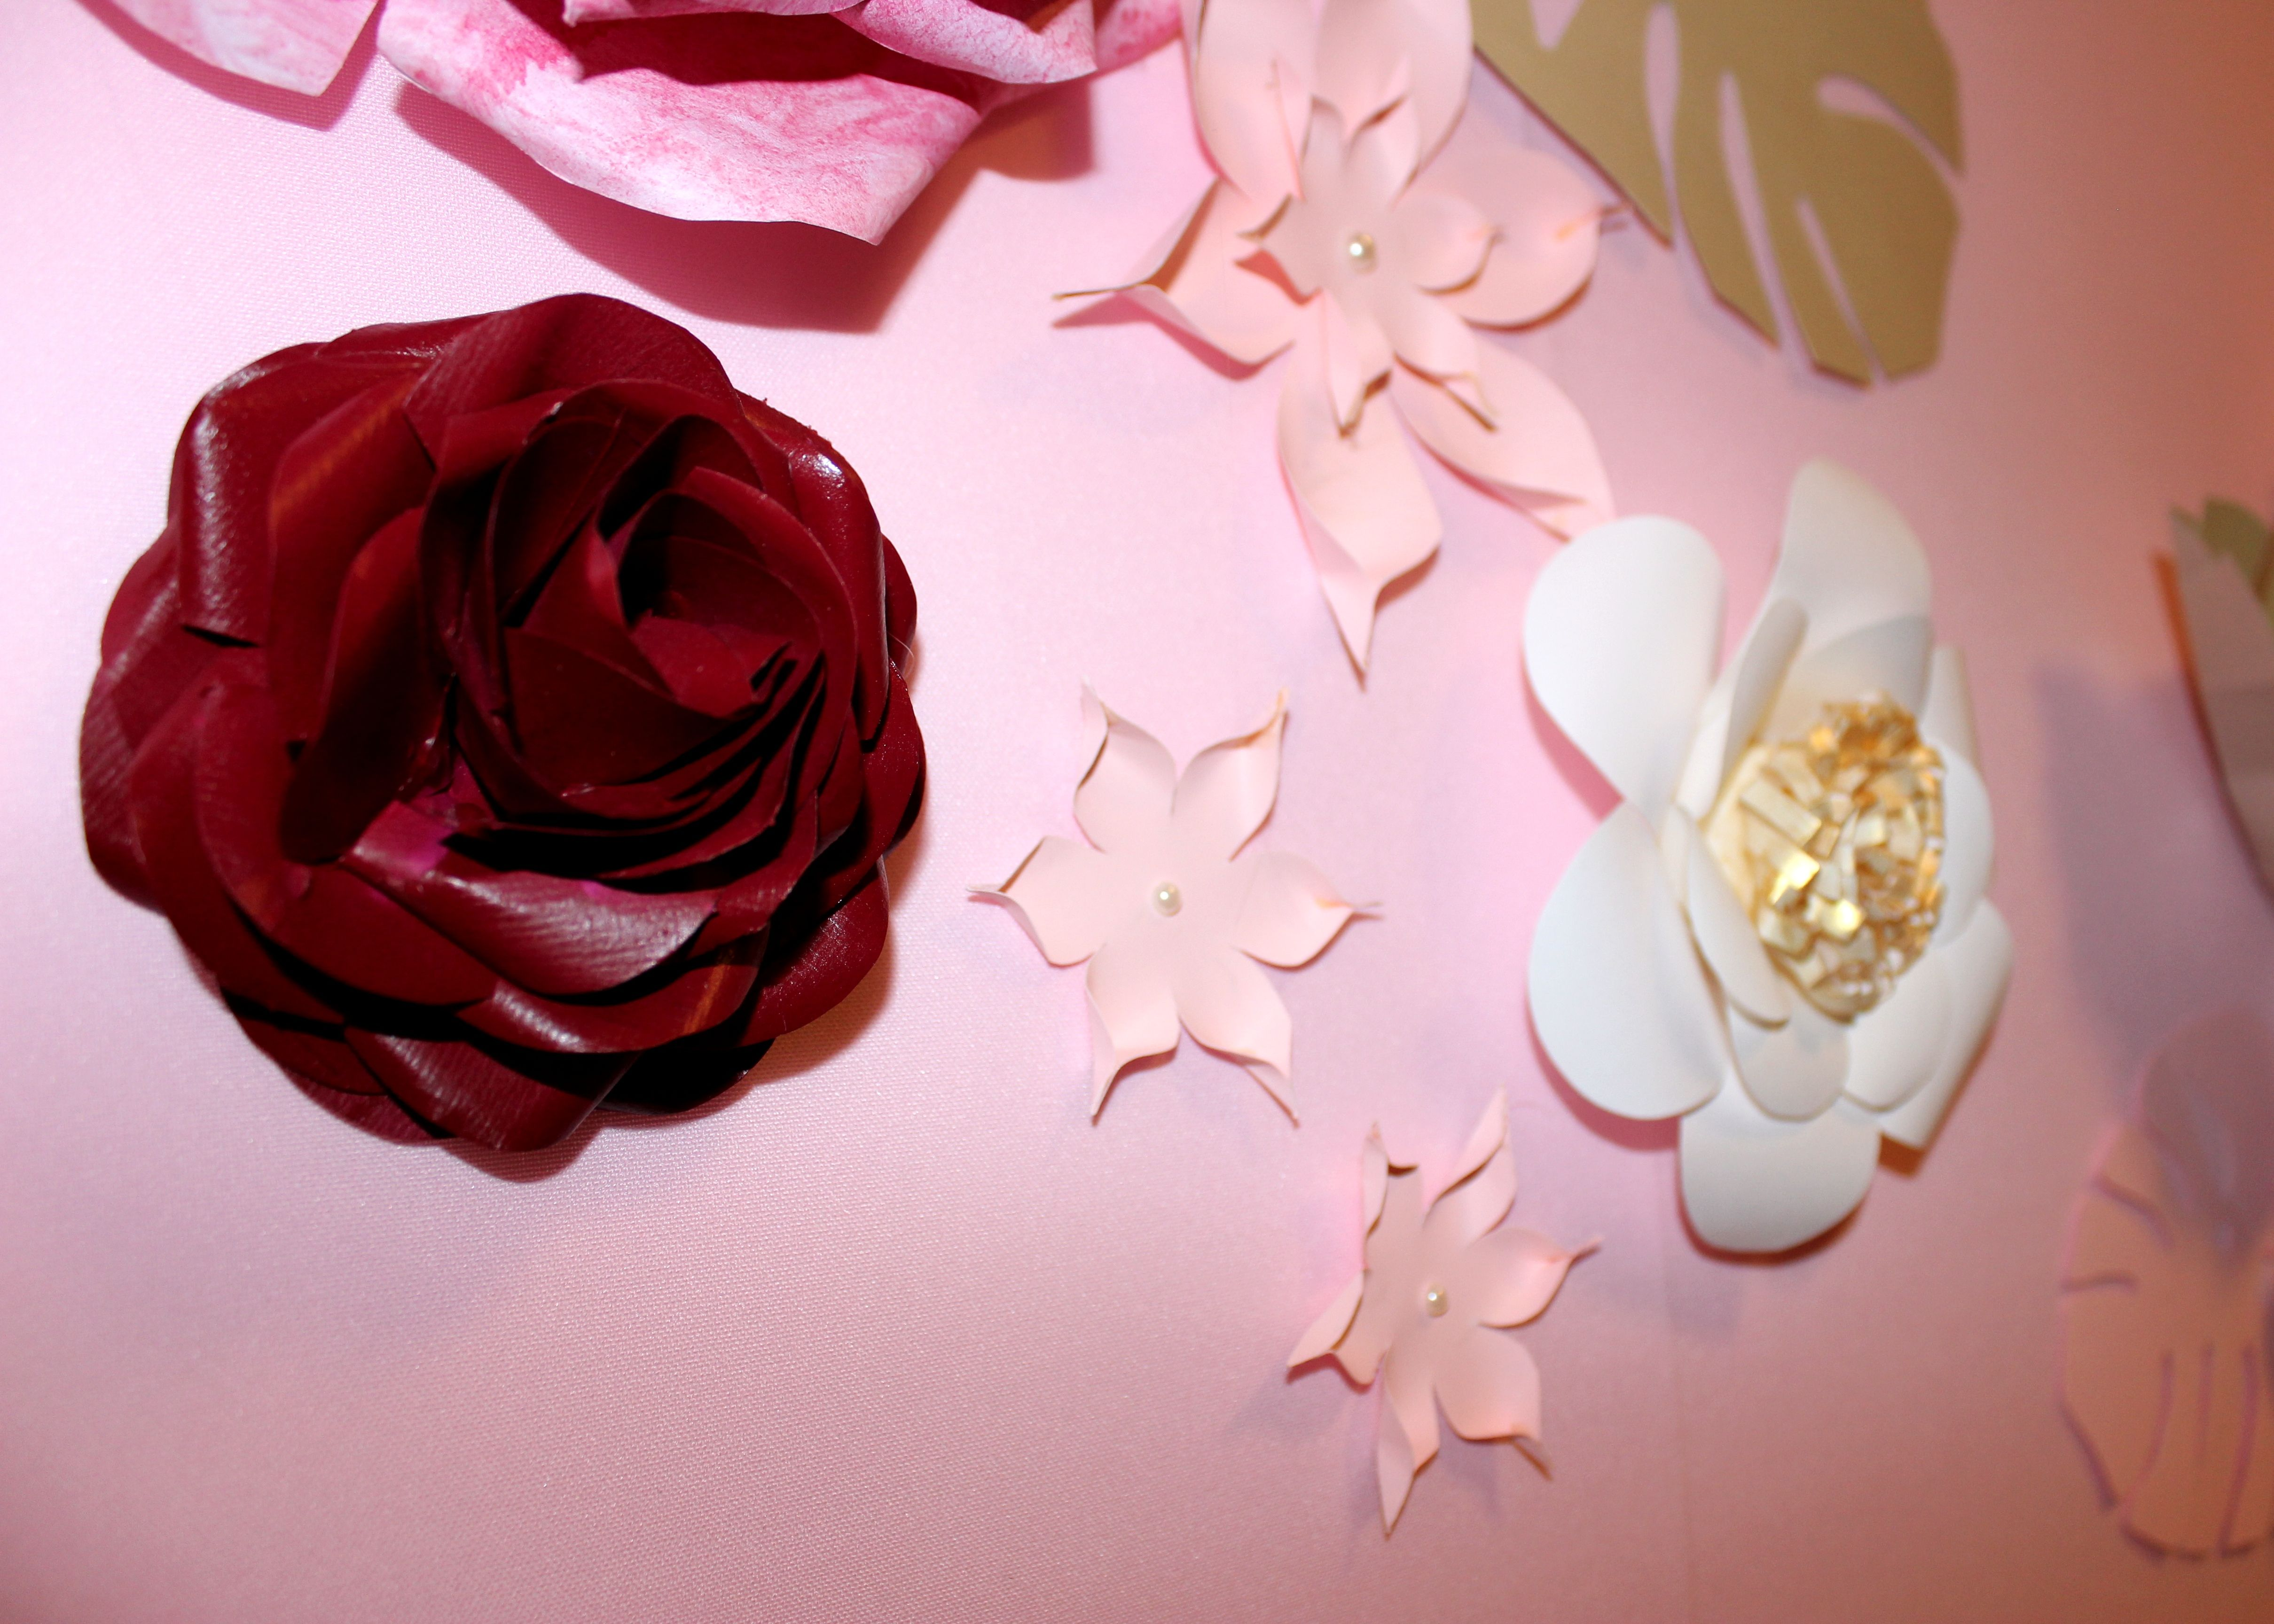 Famous homemade paper flowers photos images for wedding gown ideas unusual homemade paper flowers pictures inspiration images for mightylinksfo Image collections